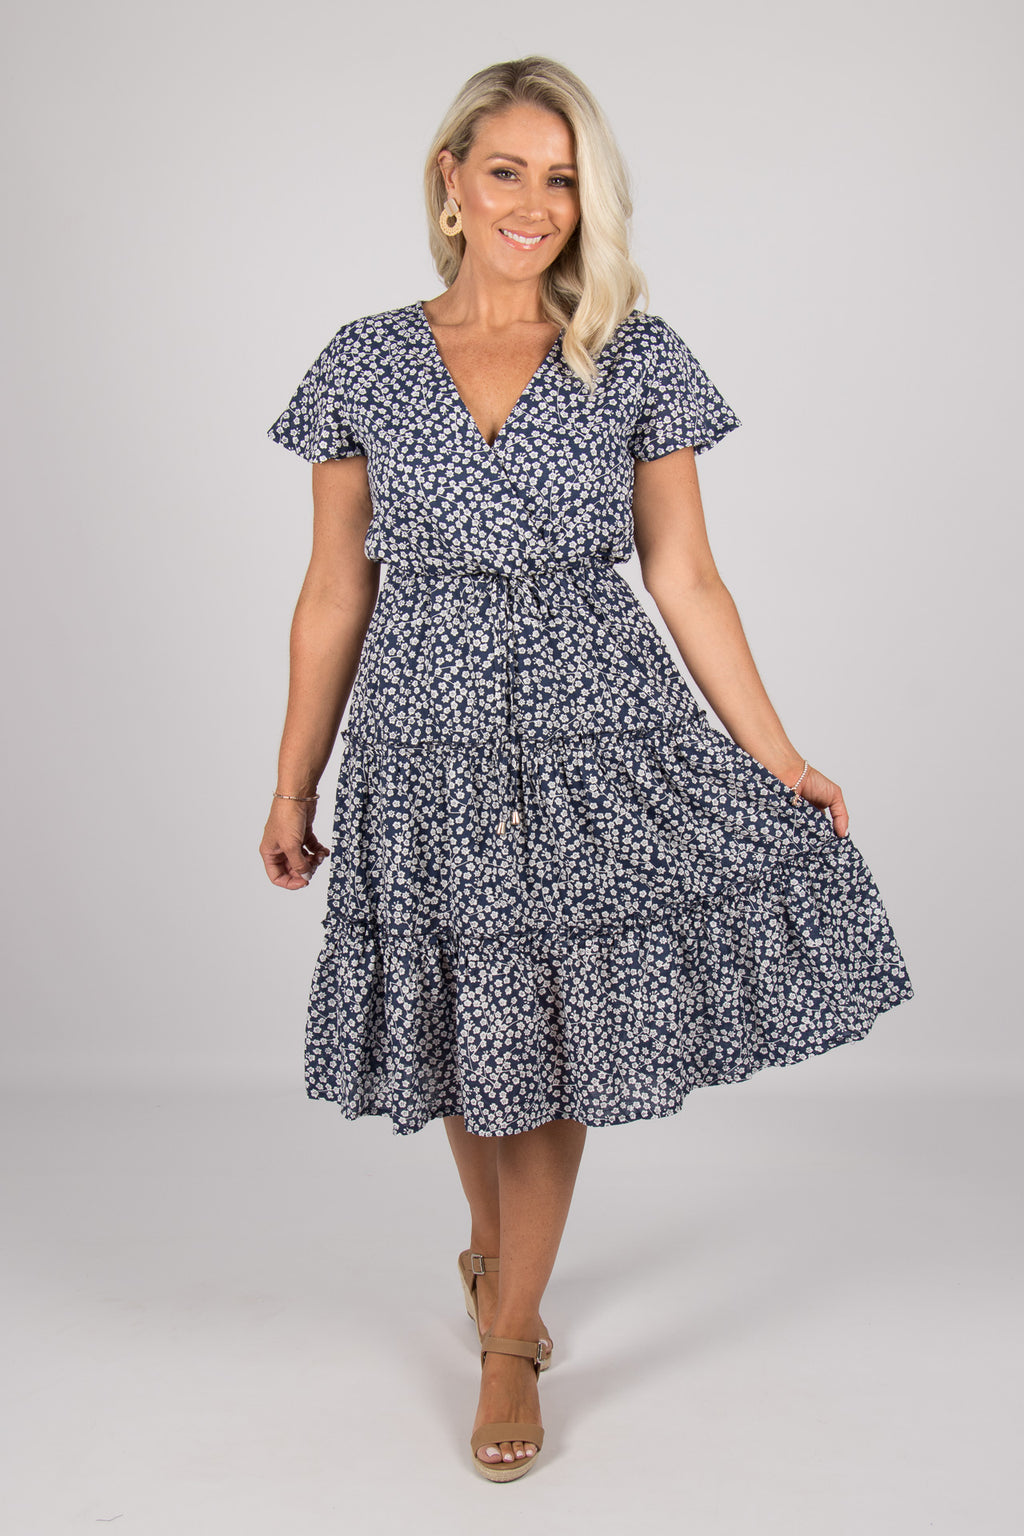 Valley Dress in Navy